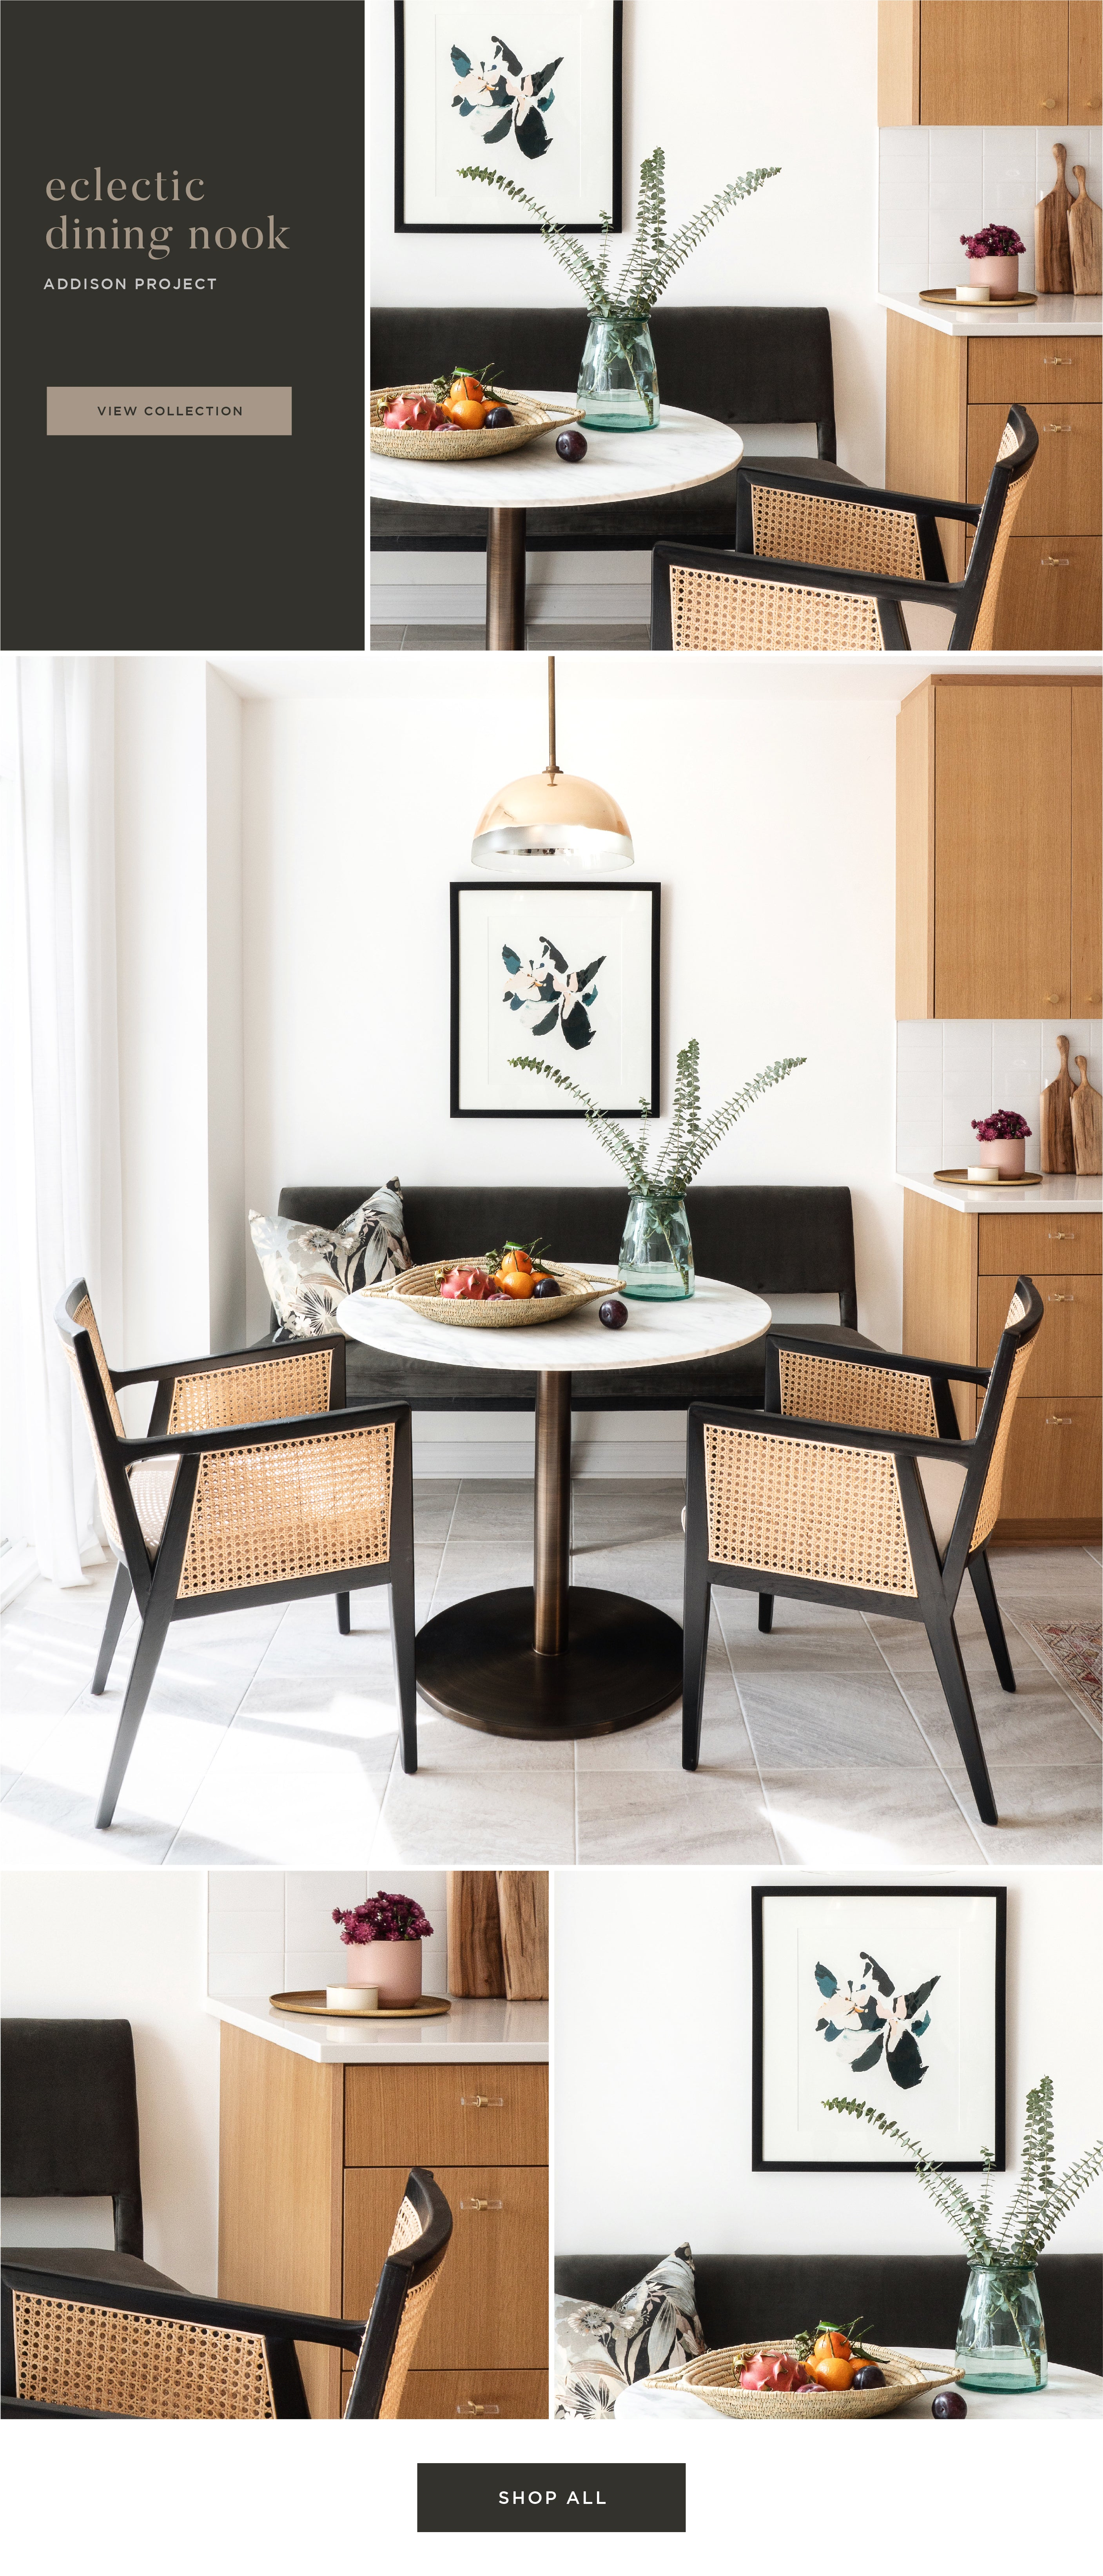 Shop the Look - Eclectic Dining Nook